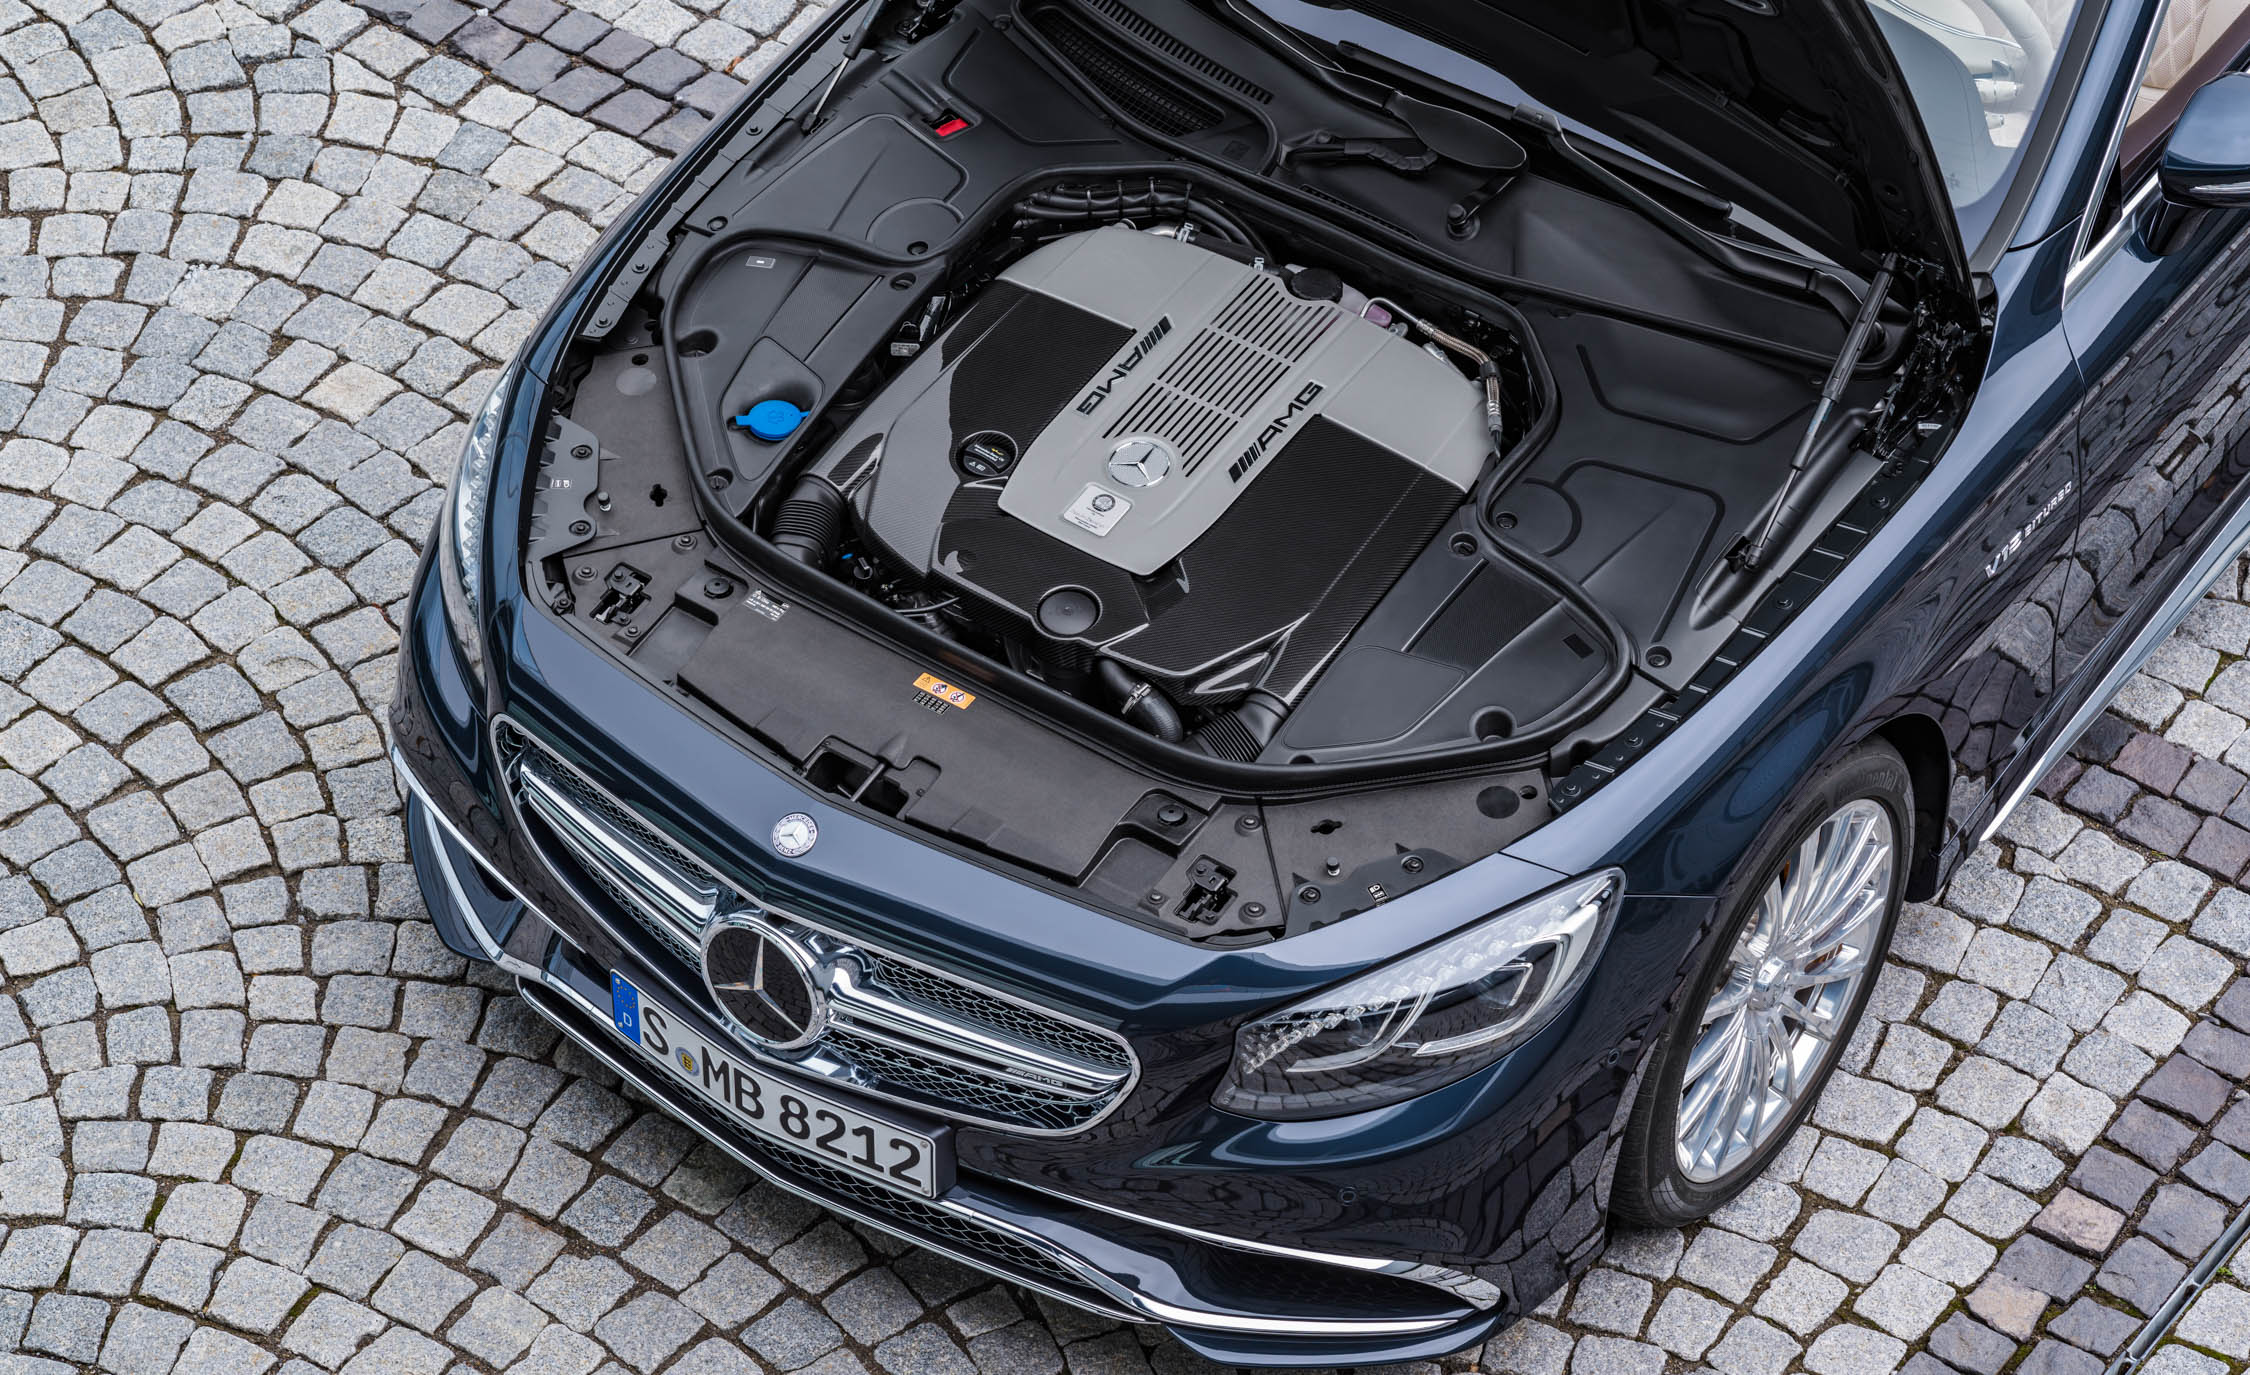 2017 Mercedes Amg S65 Cabriolet View Engine (View 7 of 15)